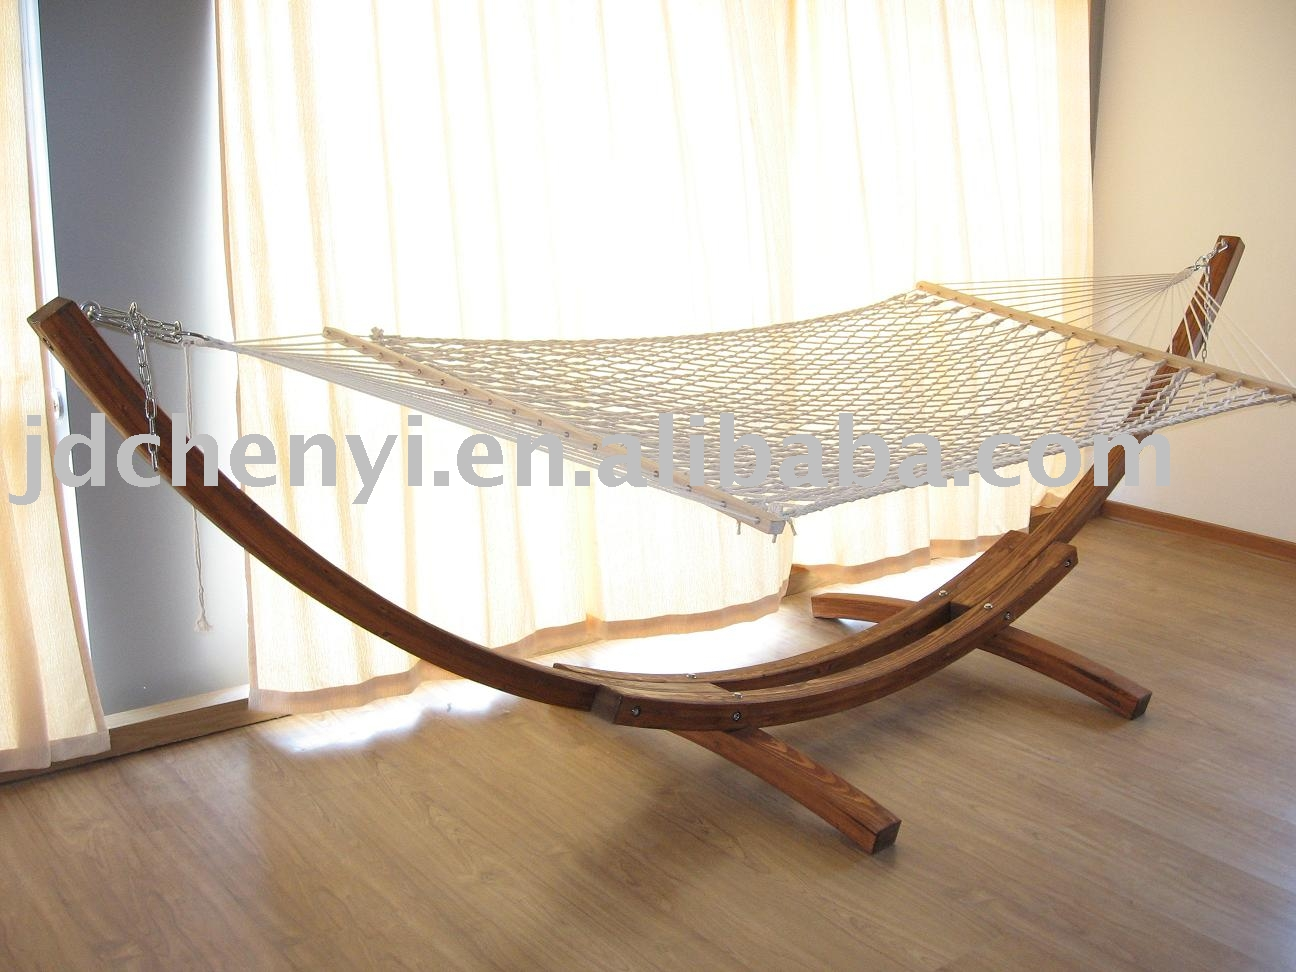 Outdoor Furniture,Wooden Hammock,Garden Furniture Photo, Detailed